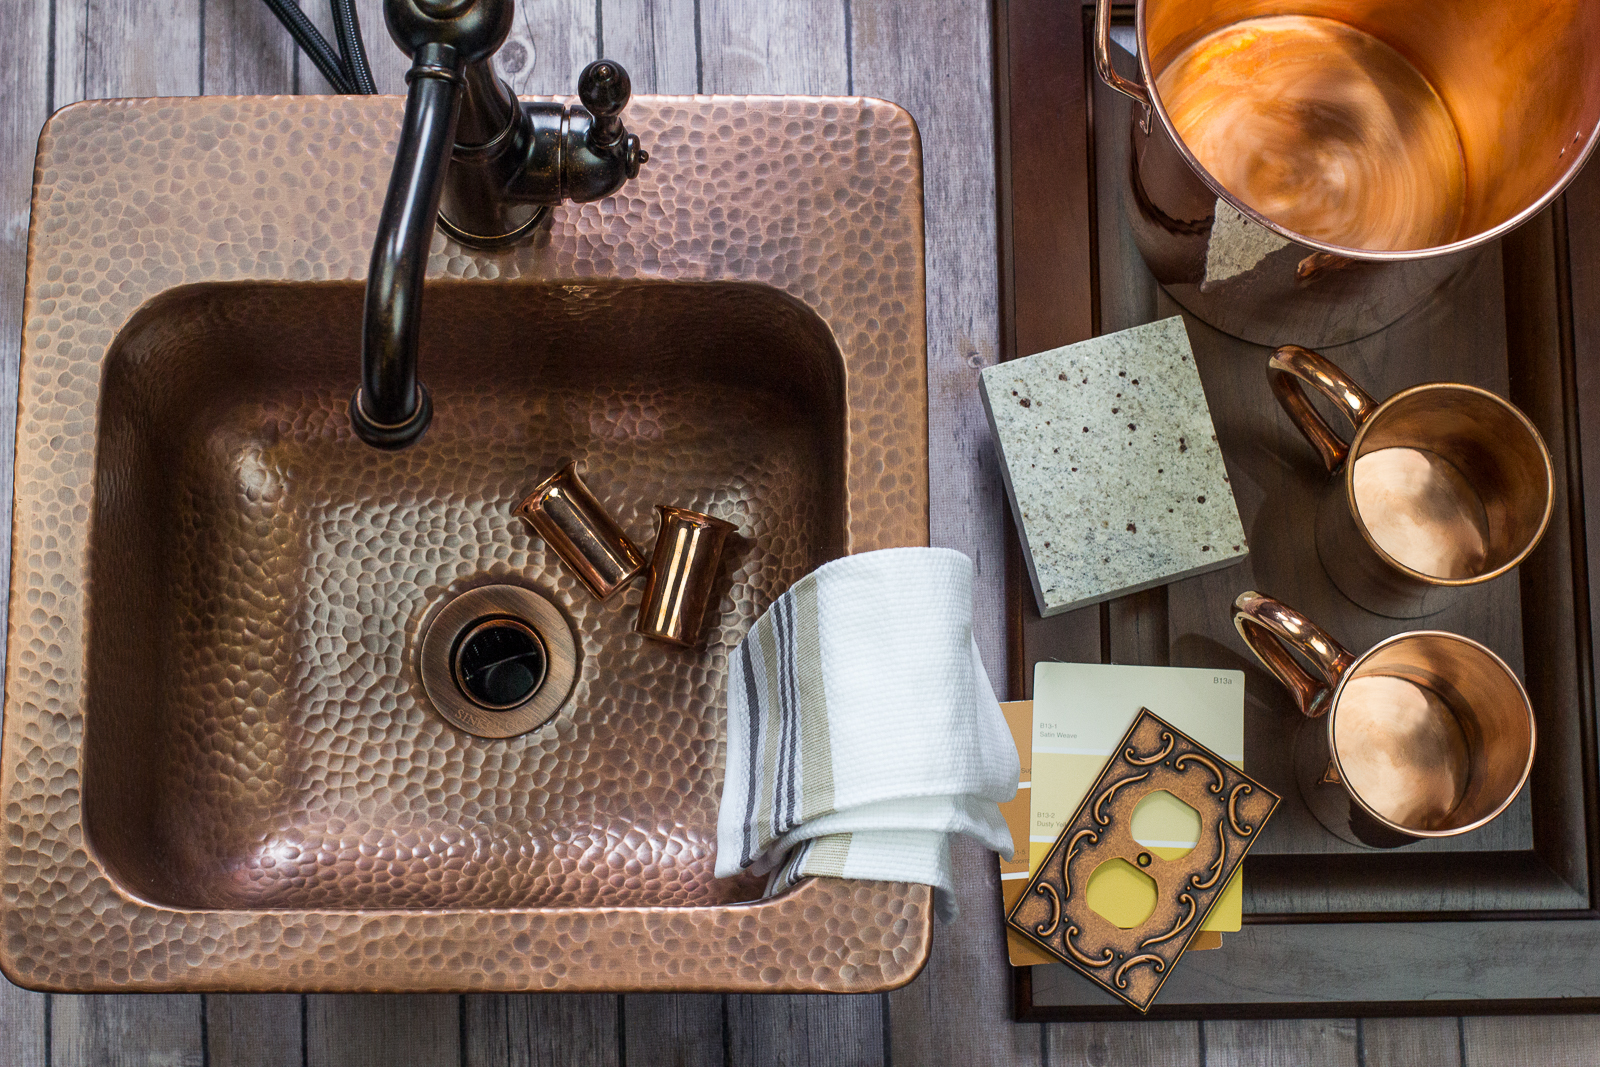 Not Only Is The Copper Material Ideal For This Space, But The Drop In  Design Helps You Keep True To The Craftsman Approach Of DIY. This Copper Bar  Sink Will ...